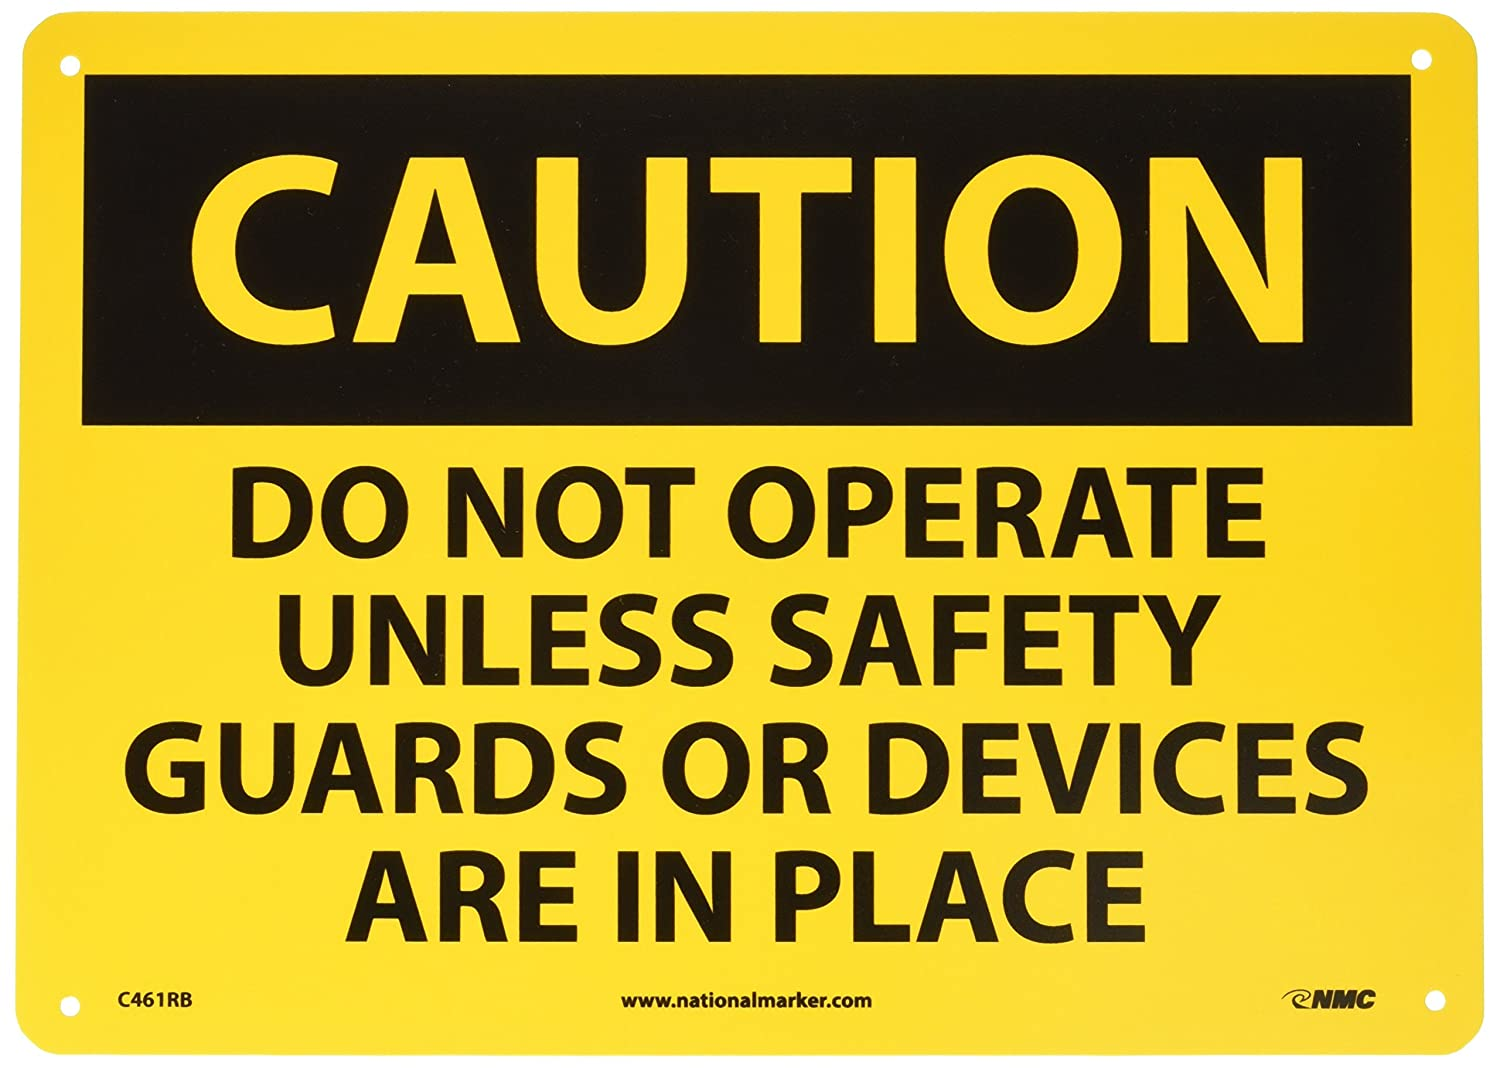 NMC C461AB OSHA Sign 14 Length x 10 Height Aluminum Black on Yellow DO NOT OPERATE UNLESS SAFETY GUARDS OR DEVICES ARE IN PLACE Legend CAUTION